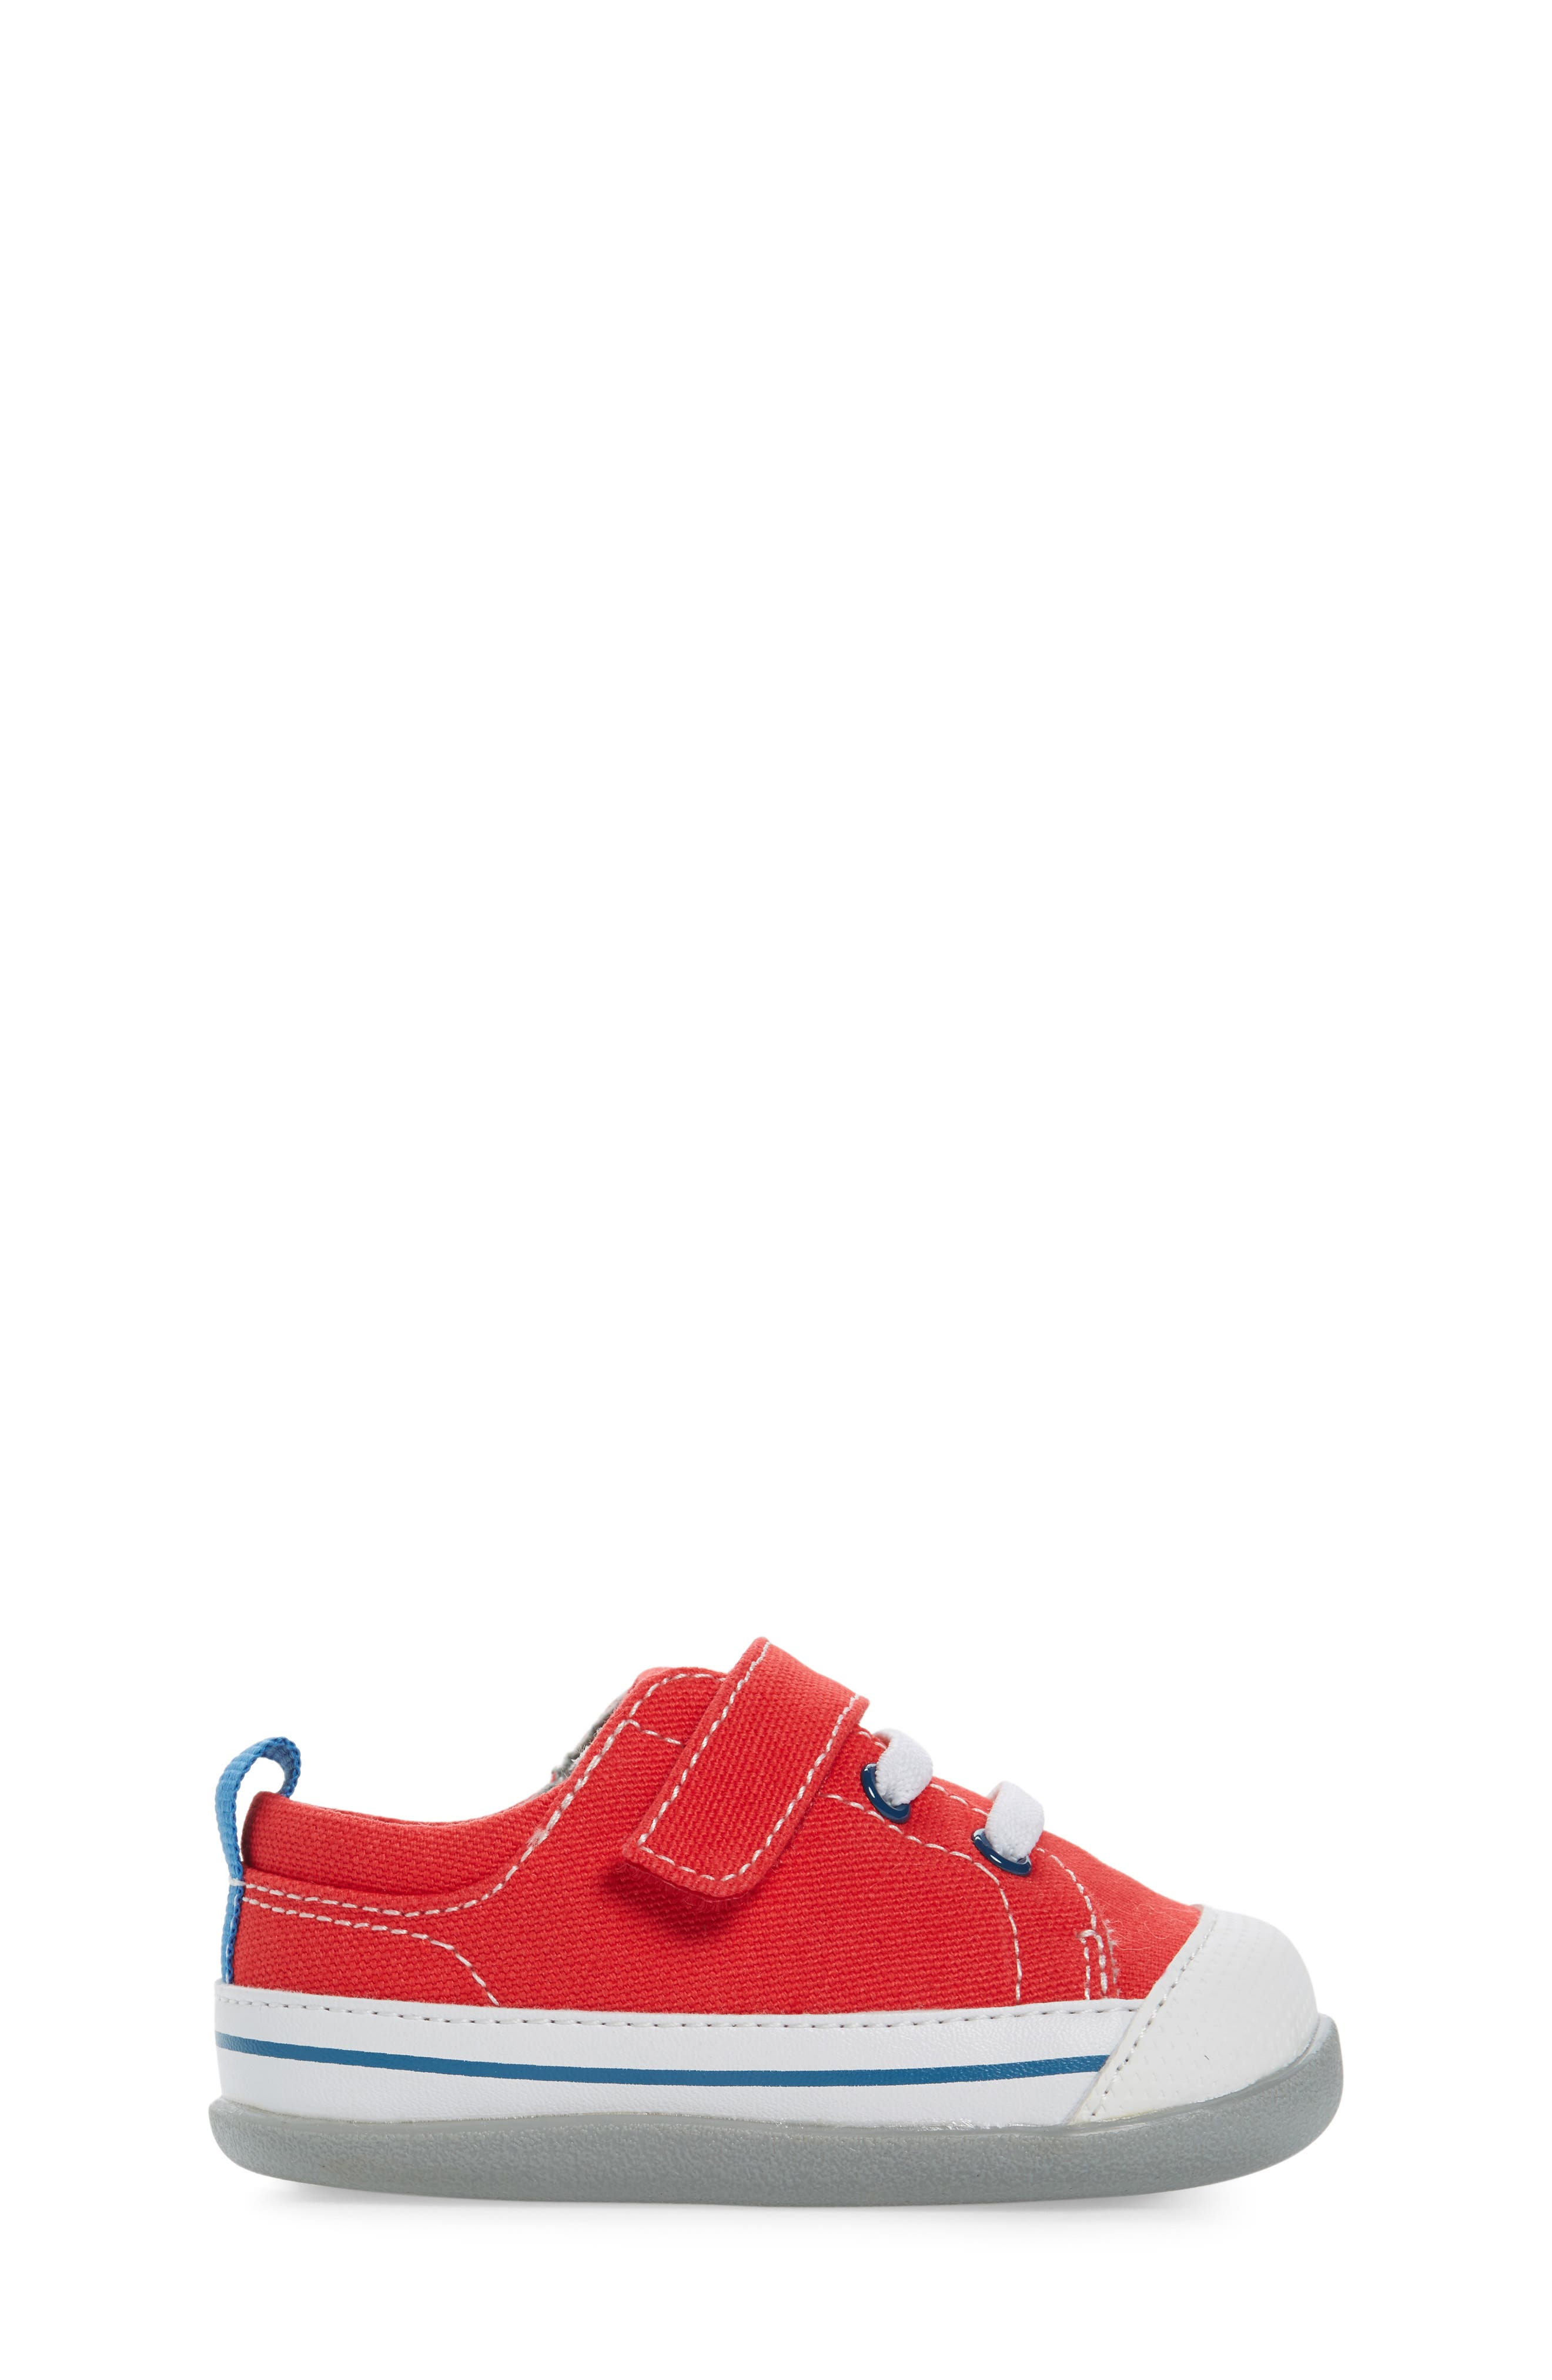 Stevie II Sneaker,                             Alternate thumbnail 3, color,                             RED CANVAS